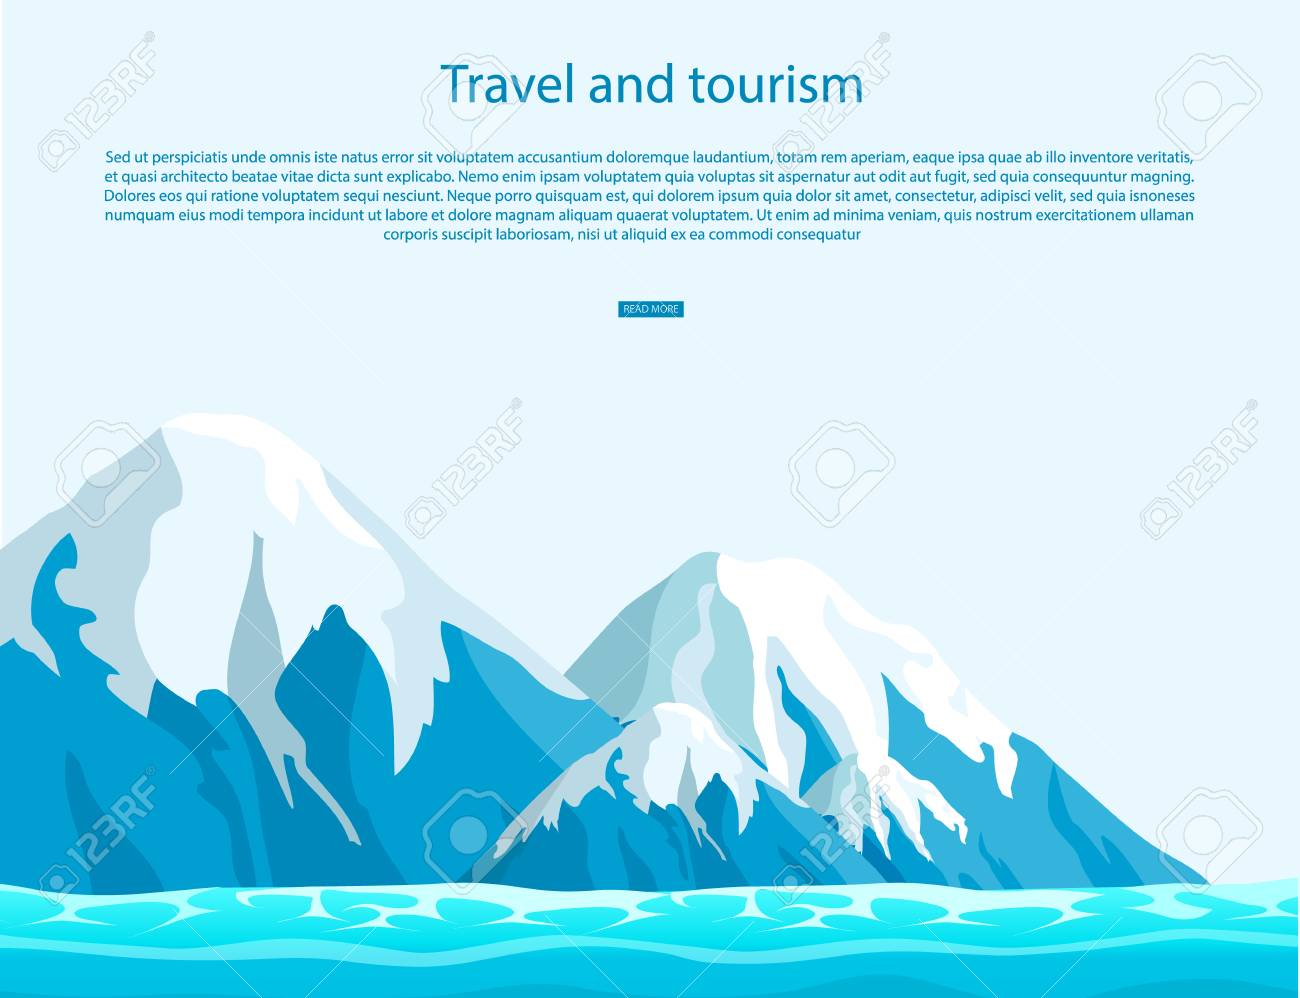 Travel and tourism sign with text on blue sky as background. Ice mountains with snow tops above ocean vector illustration. - 91033331